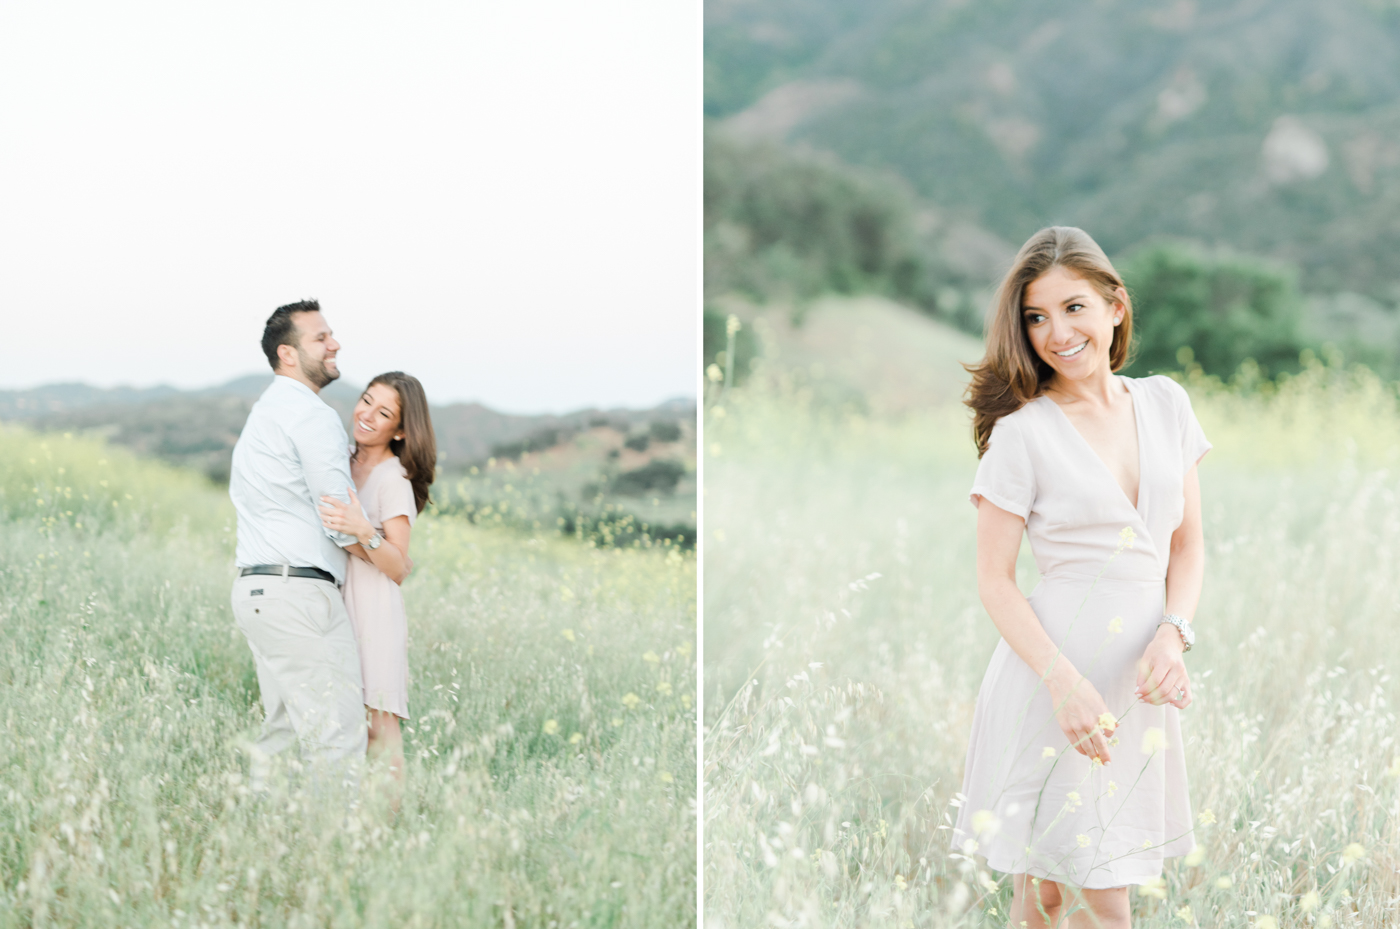 a&a_malibu_creek_state_park_engagement_session_los_angeles_fine_art_wedding_photographer-2.jpg